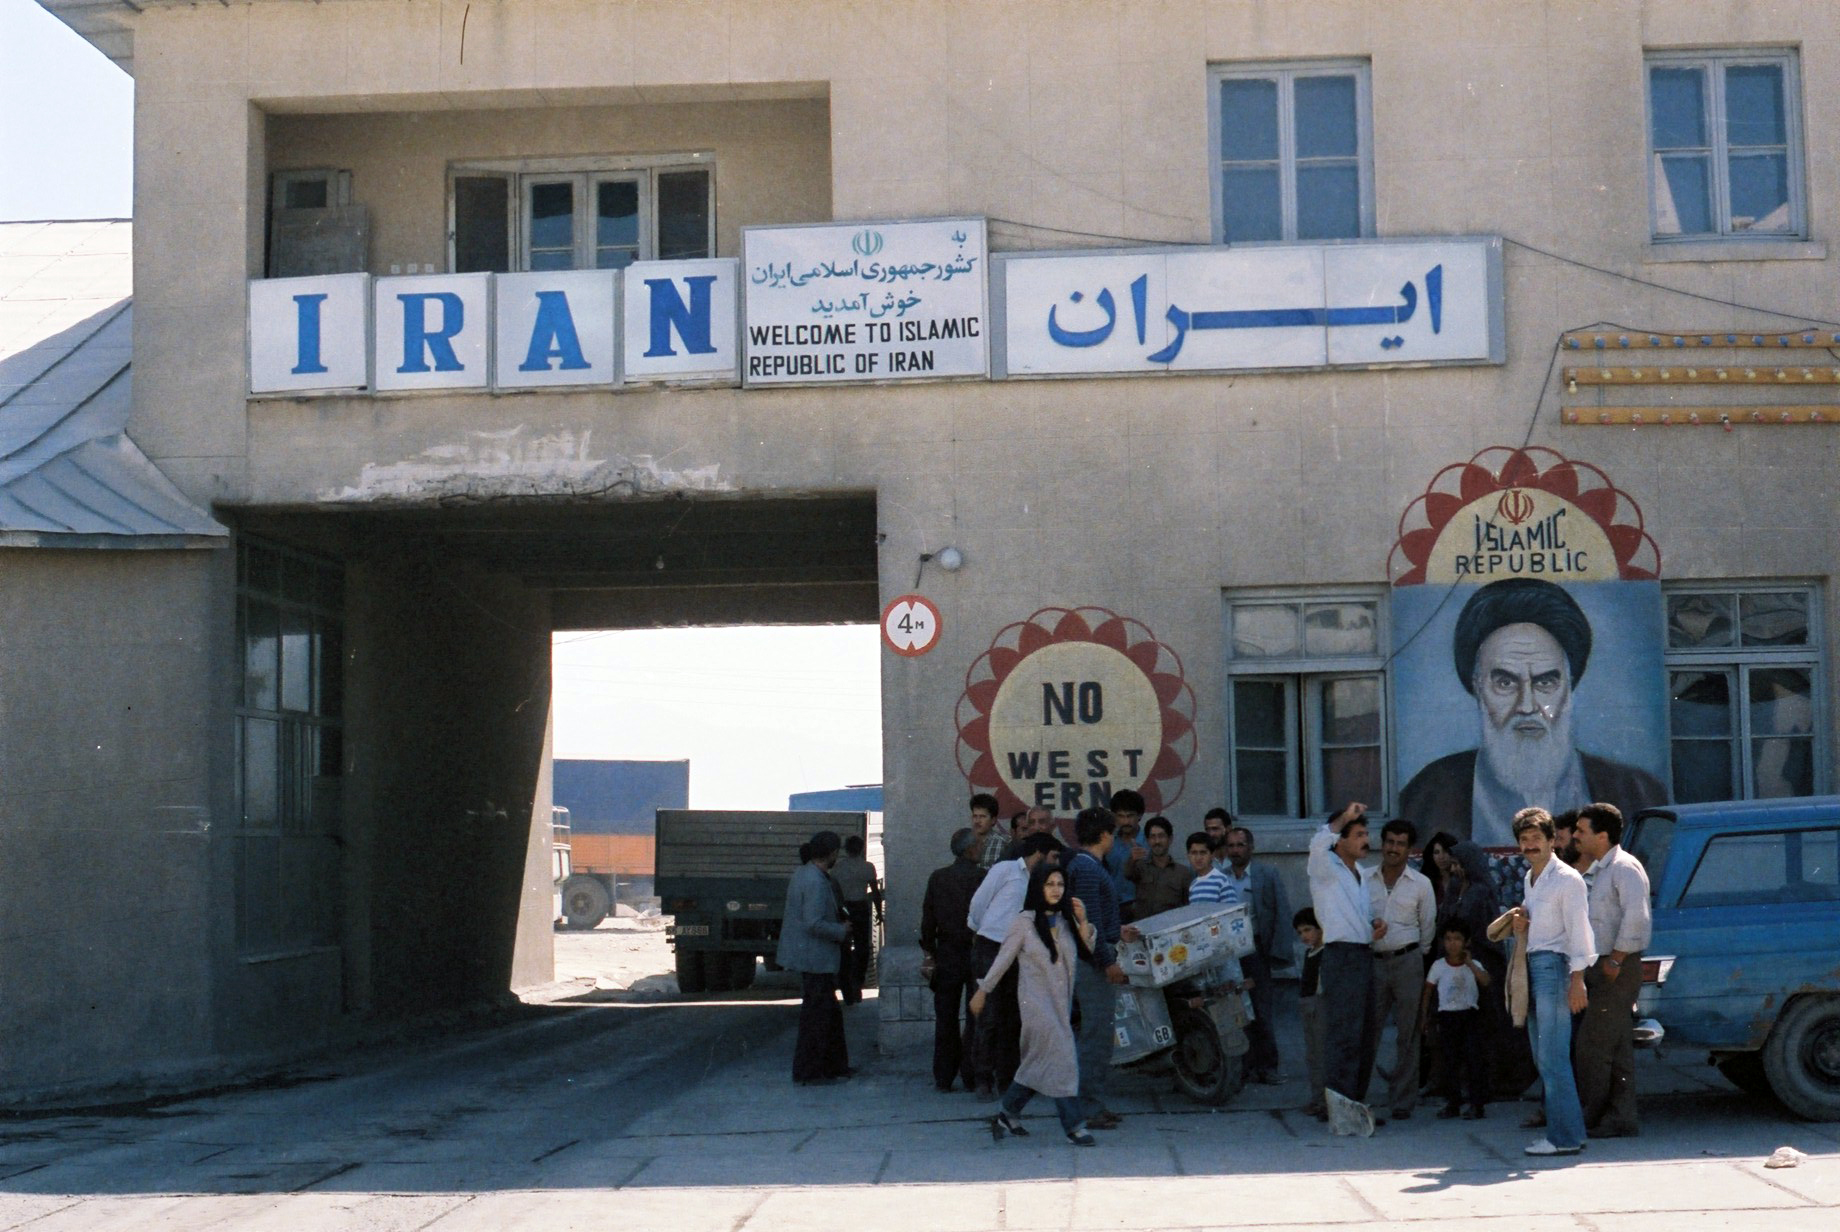 67. Iranian border out of Iran